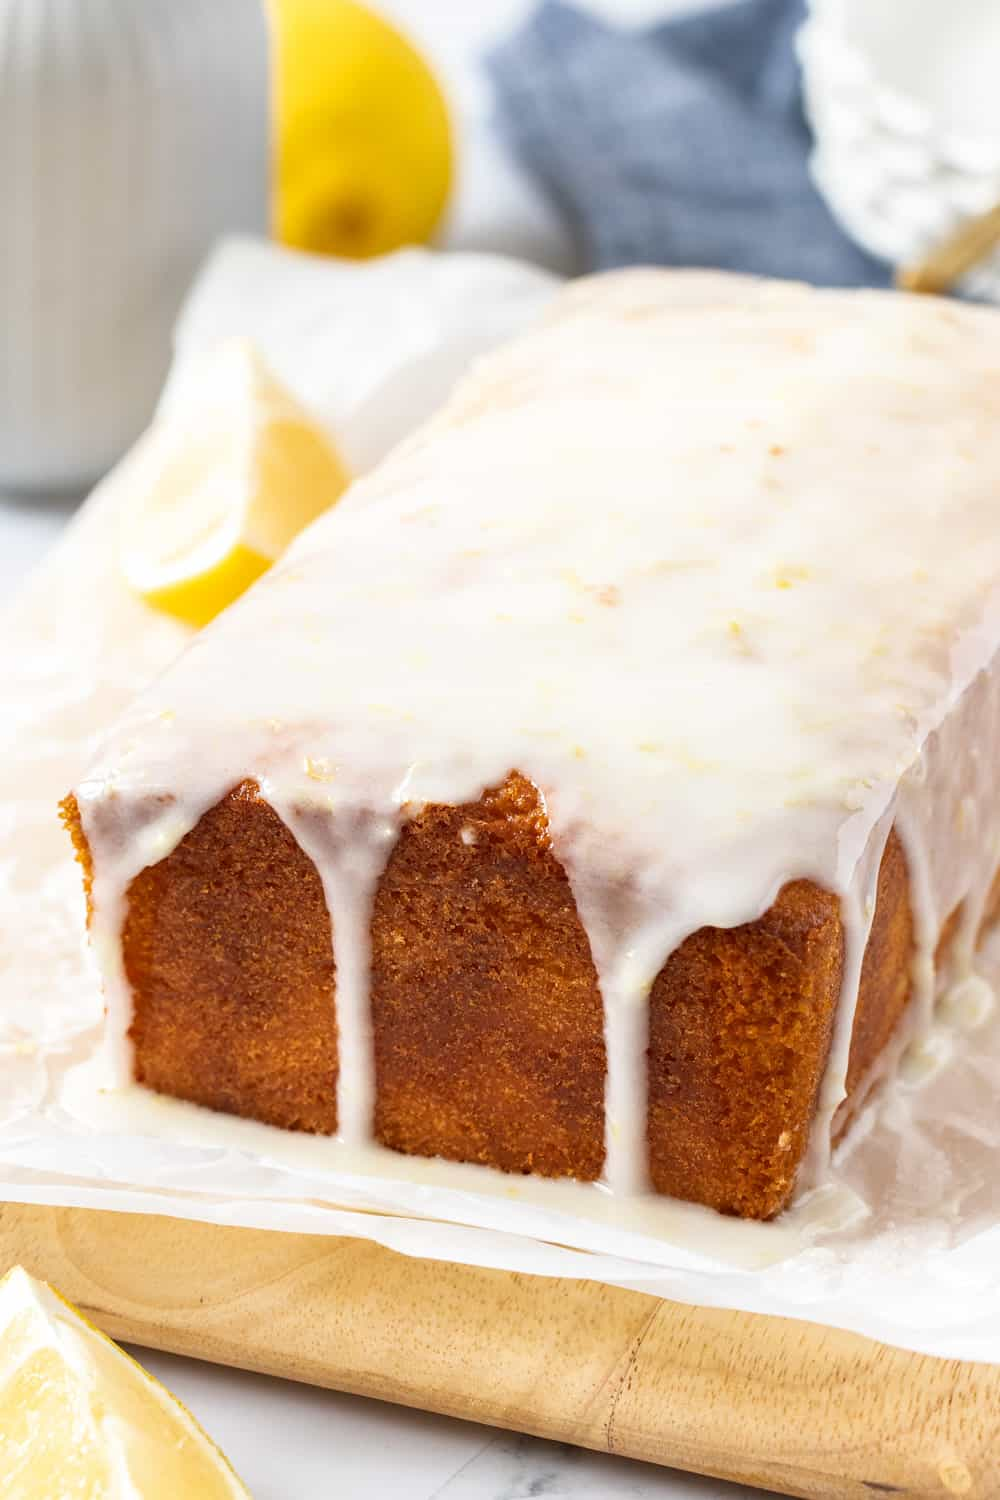 A loaf cake with glaze dripping down the sides.